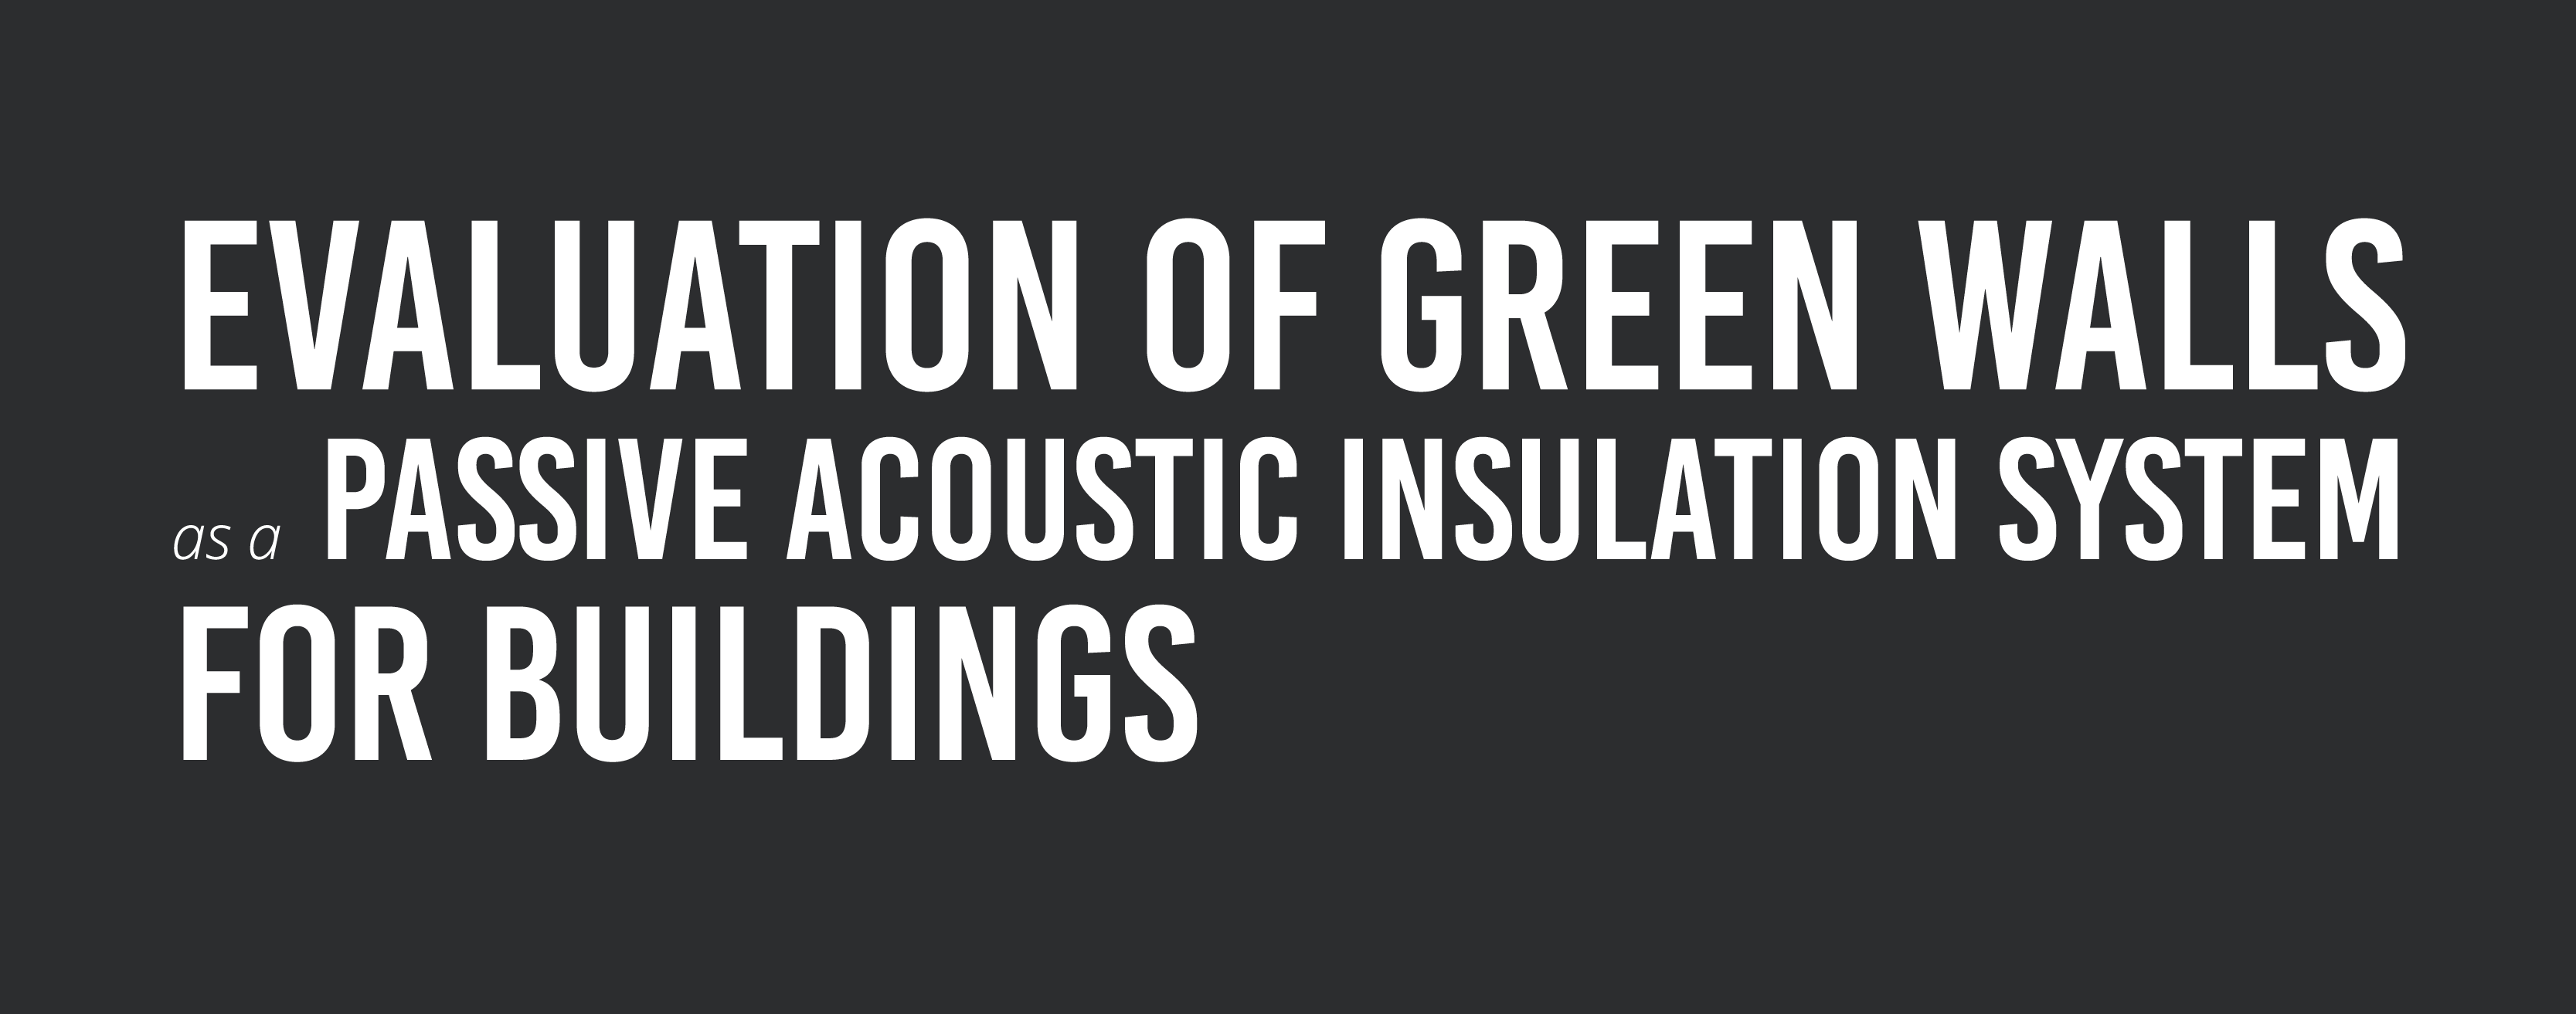 Green walls for sound insulation